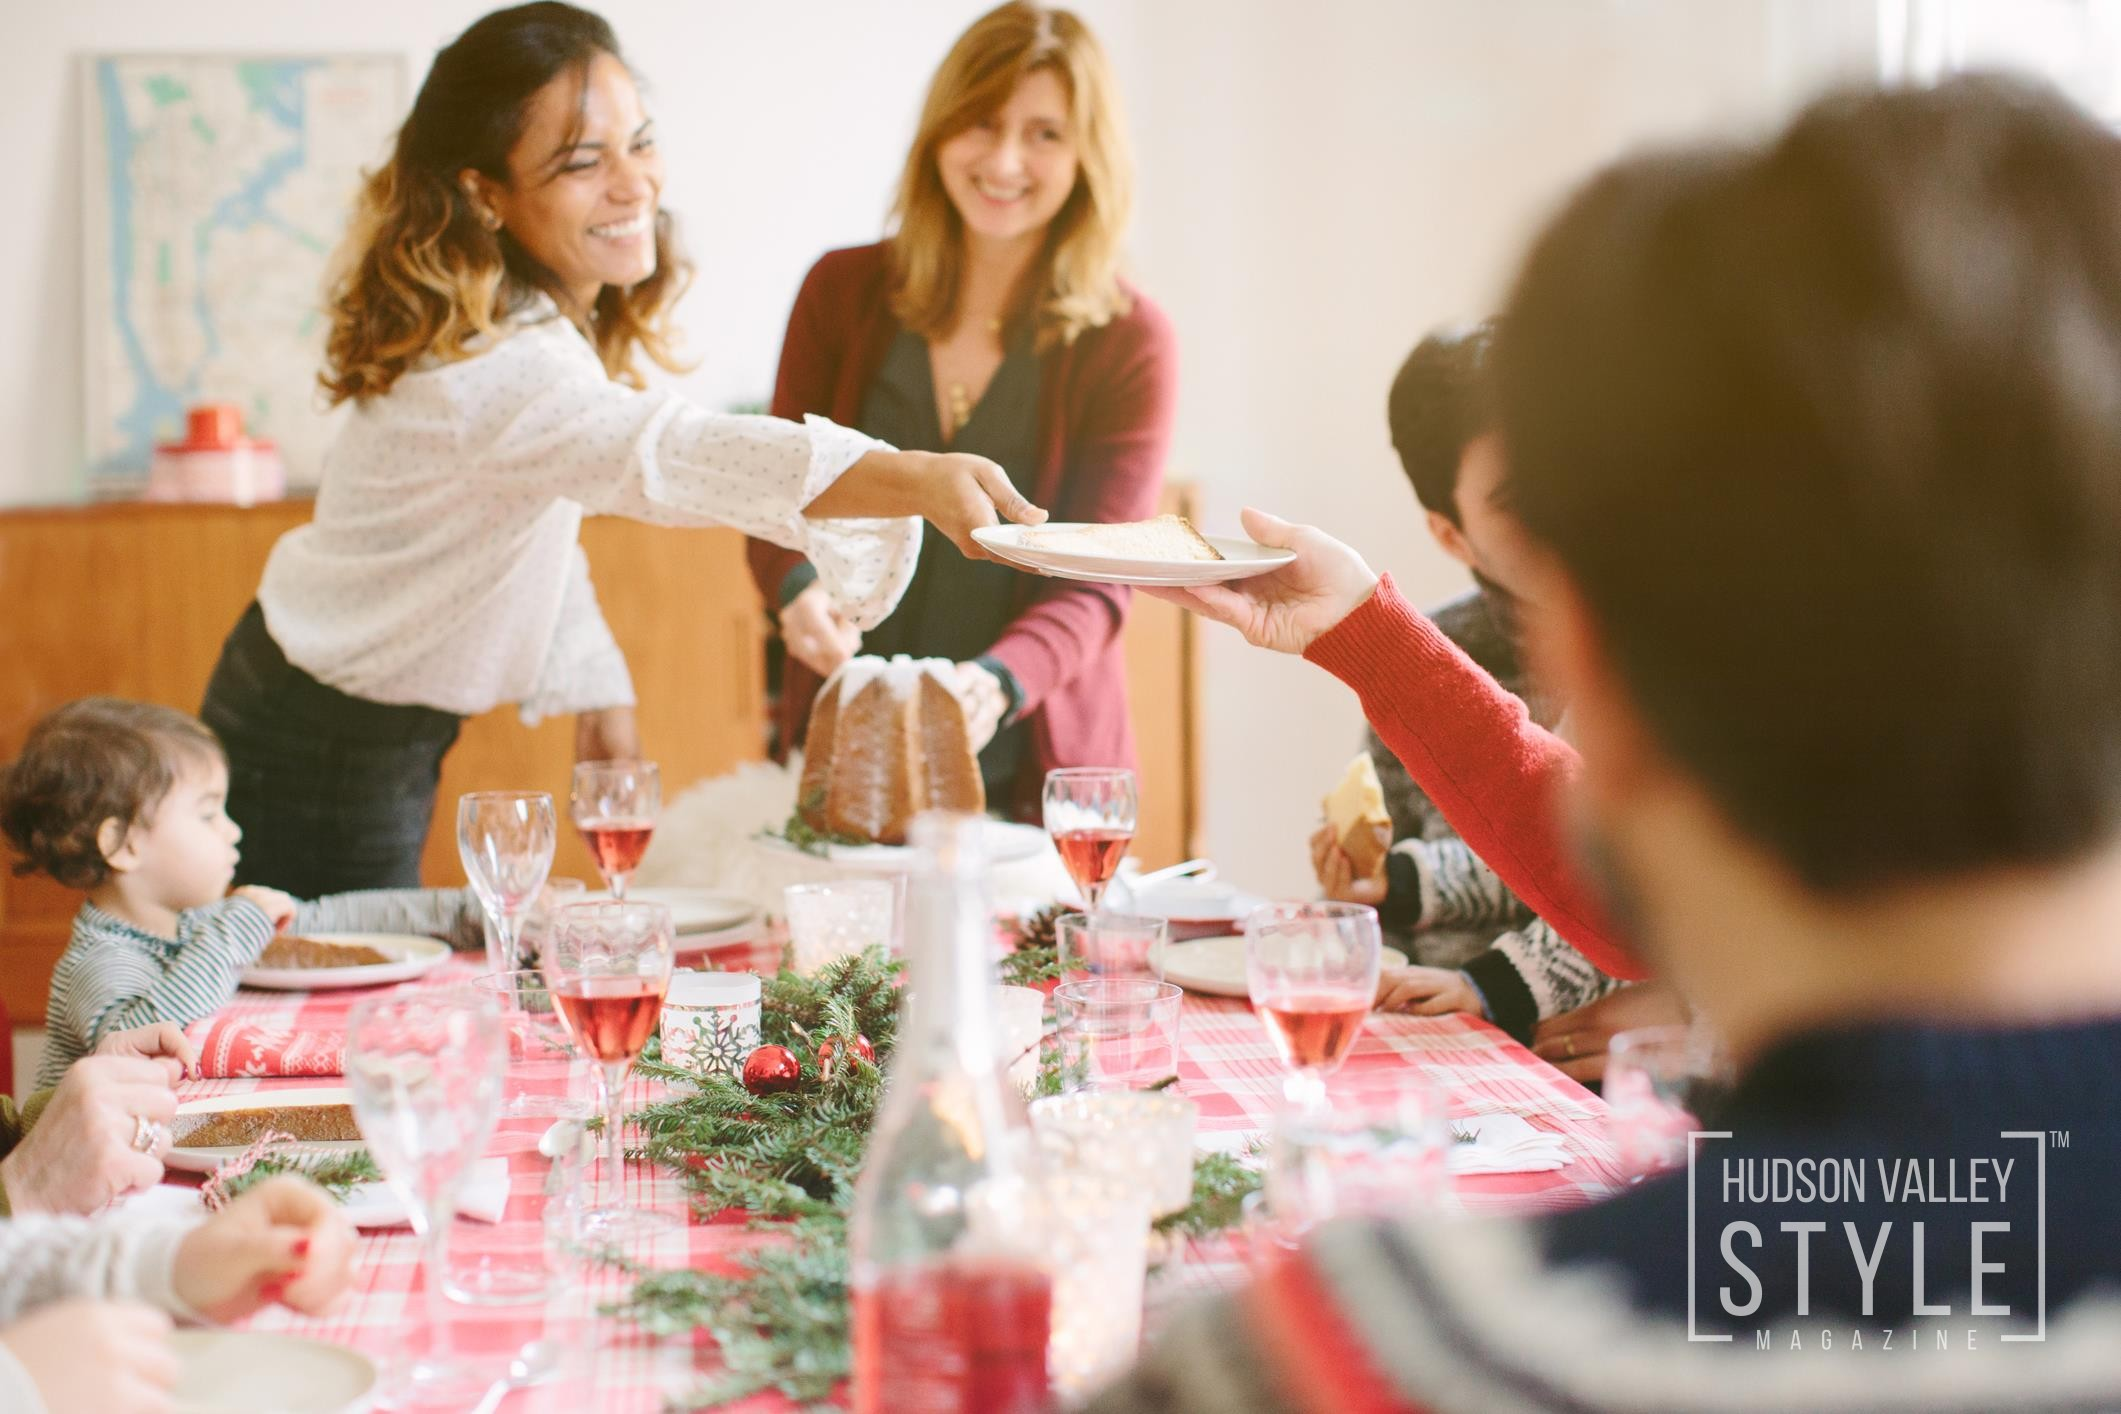 Stress-busting speed-cleaning tips for the holidays